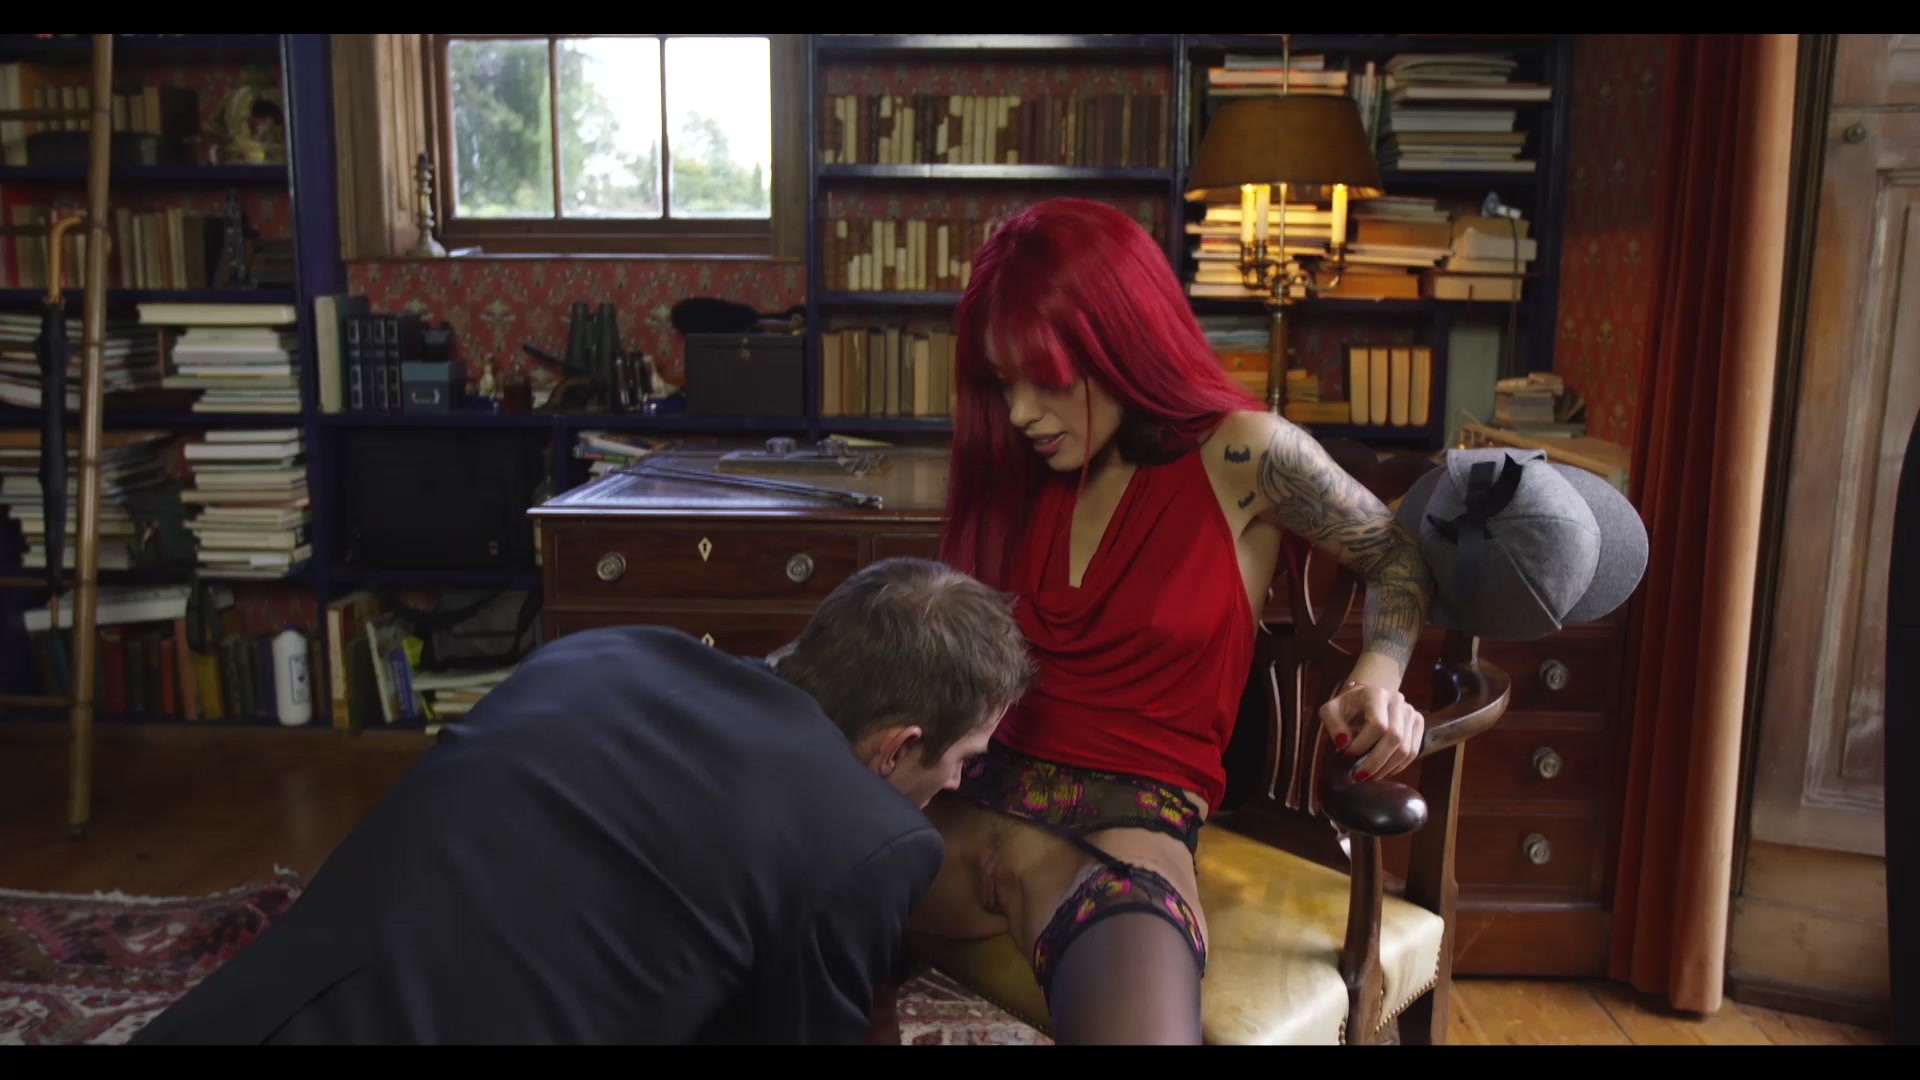 Scene with Nikita Belluci - image 10 out of 20